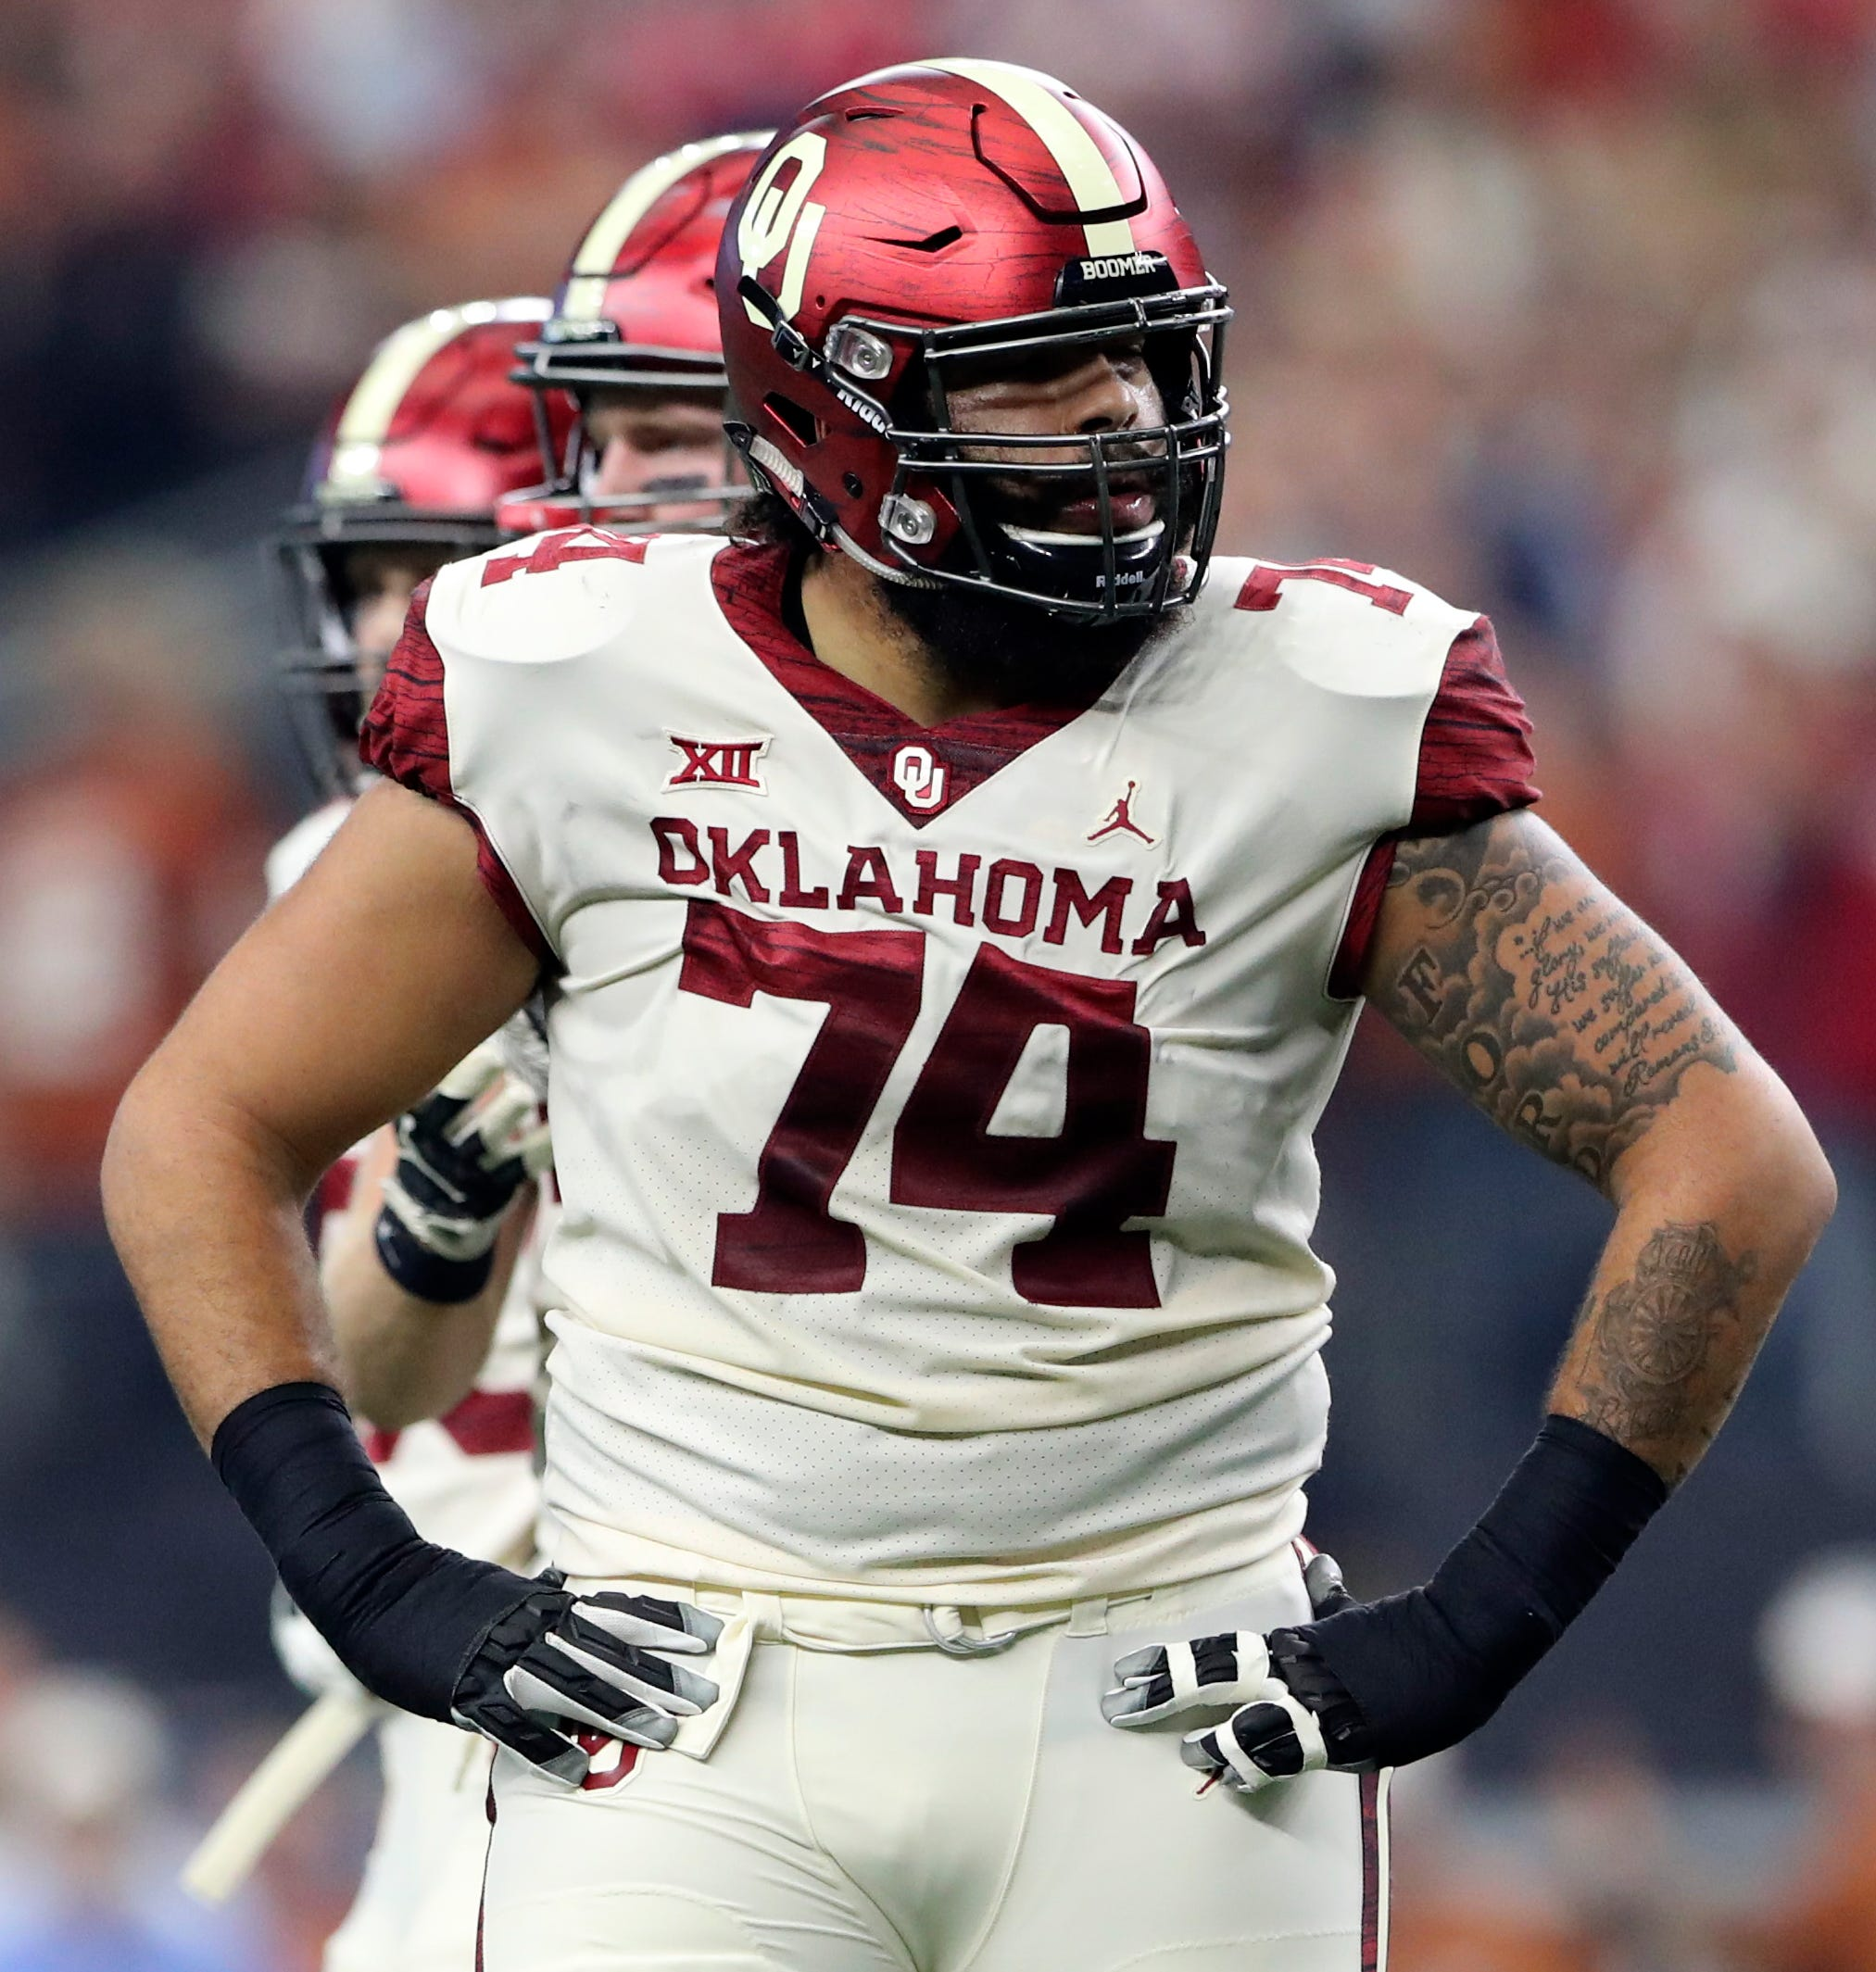 The Giants have met formally with Oklahoma tackle Cody Ford here at the Combine this week.